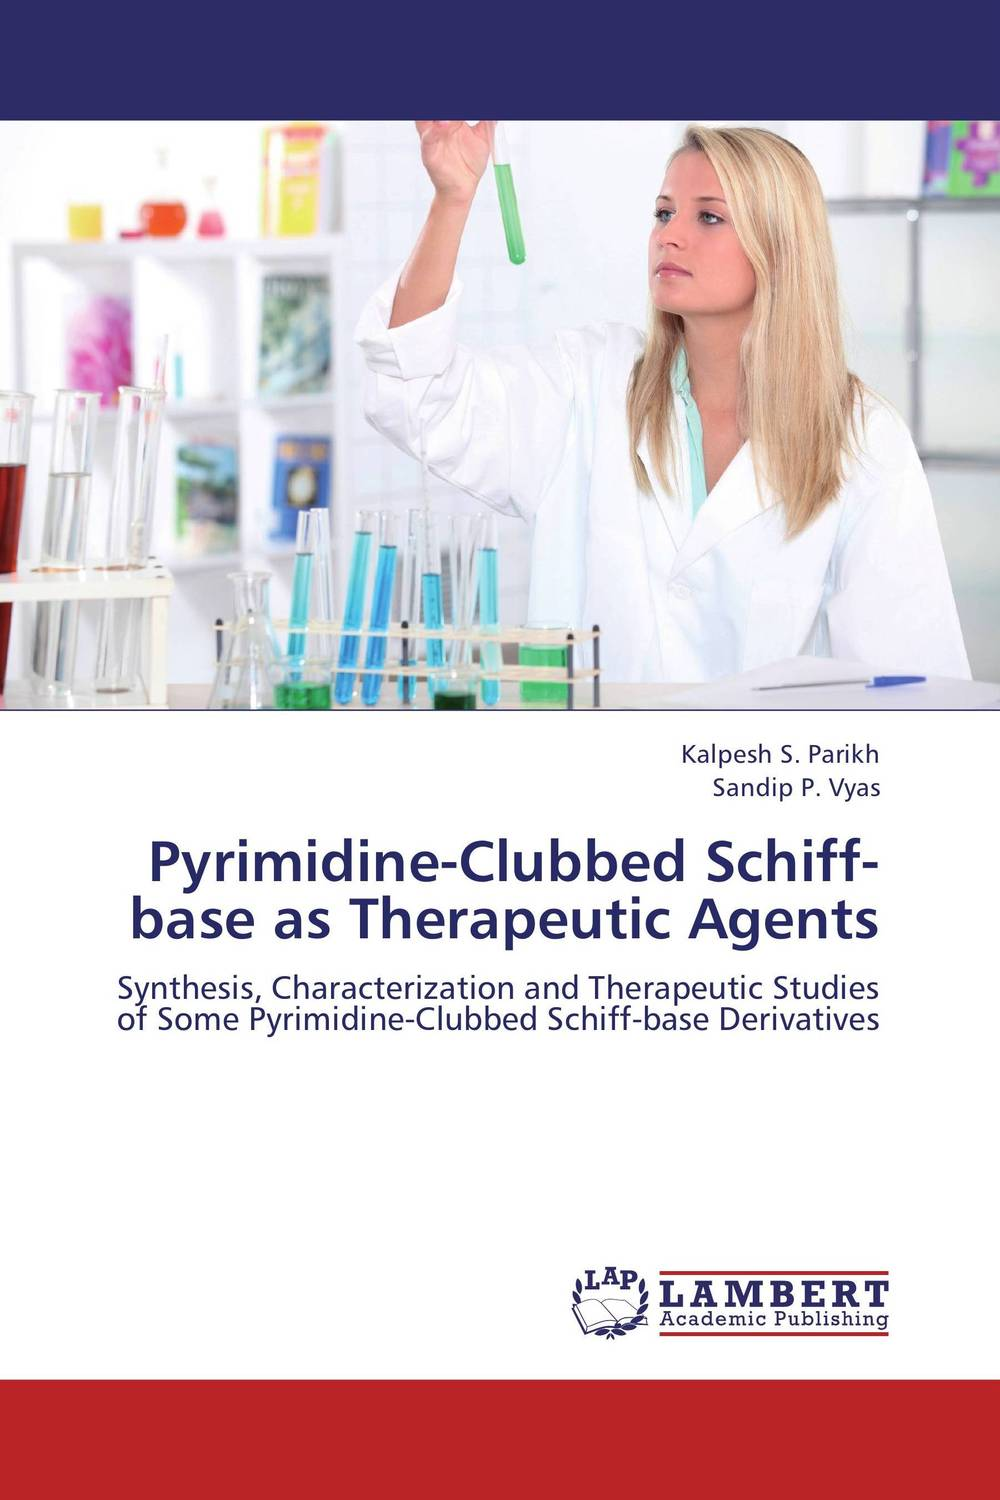 Pyrimidine-Clubbed Schiff-base as Therapeutic Agents novel arylpiperazines as anxiolytic agents synthesis and sar